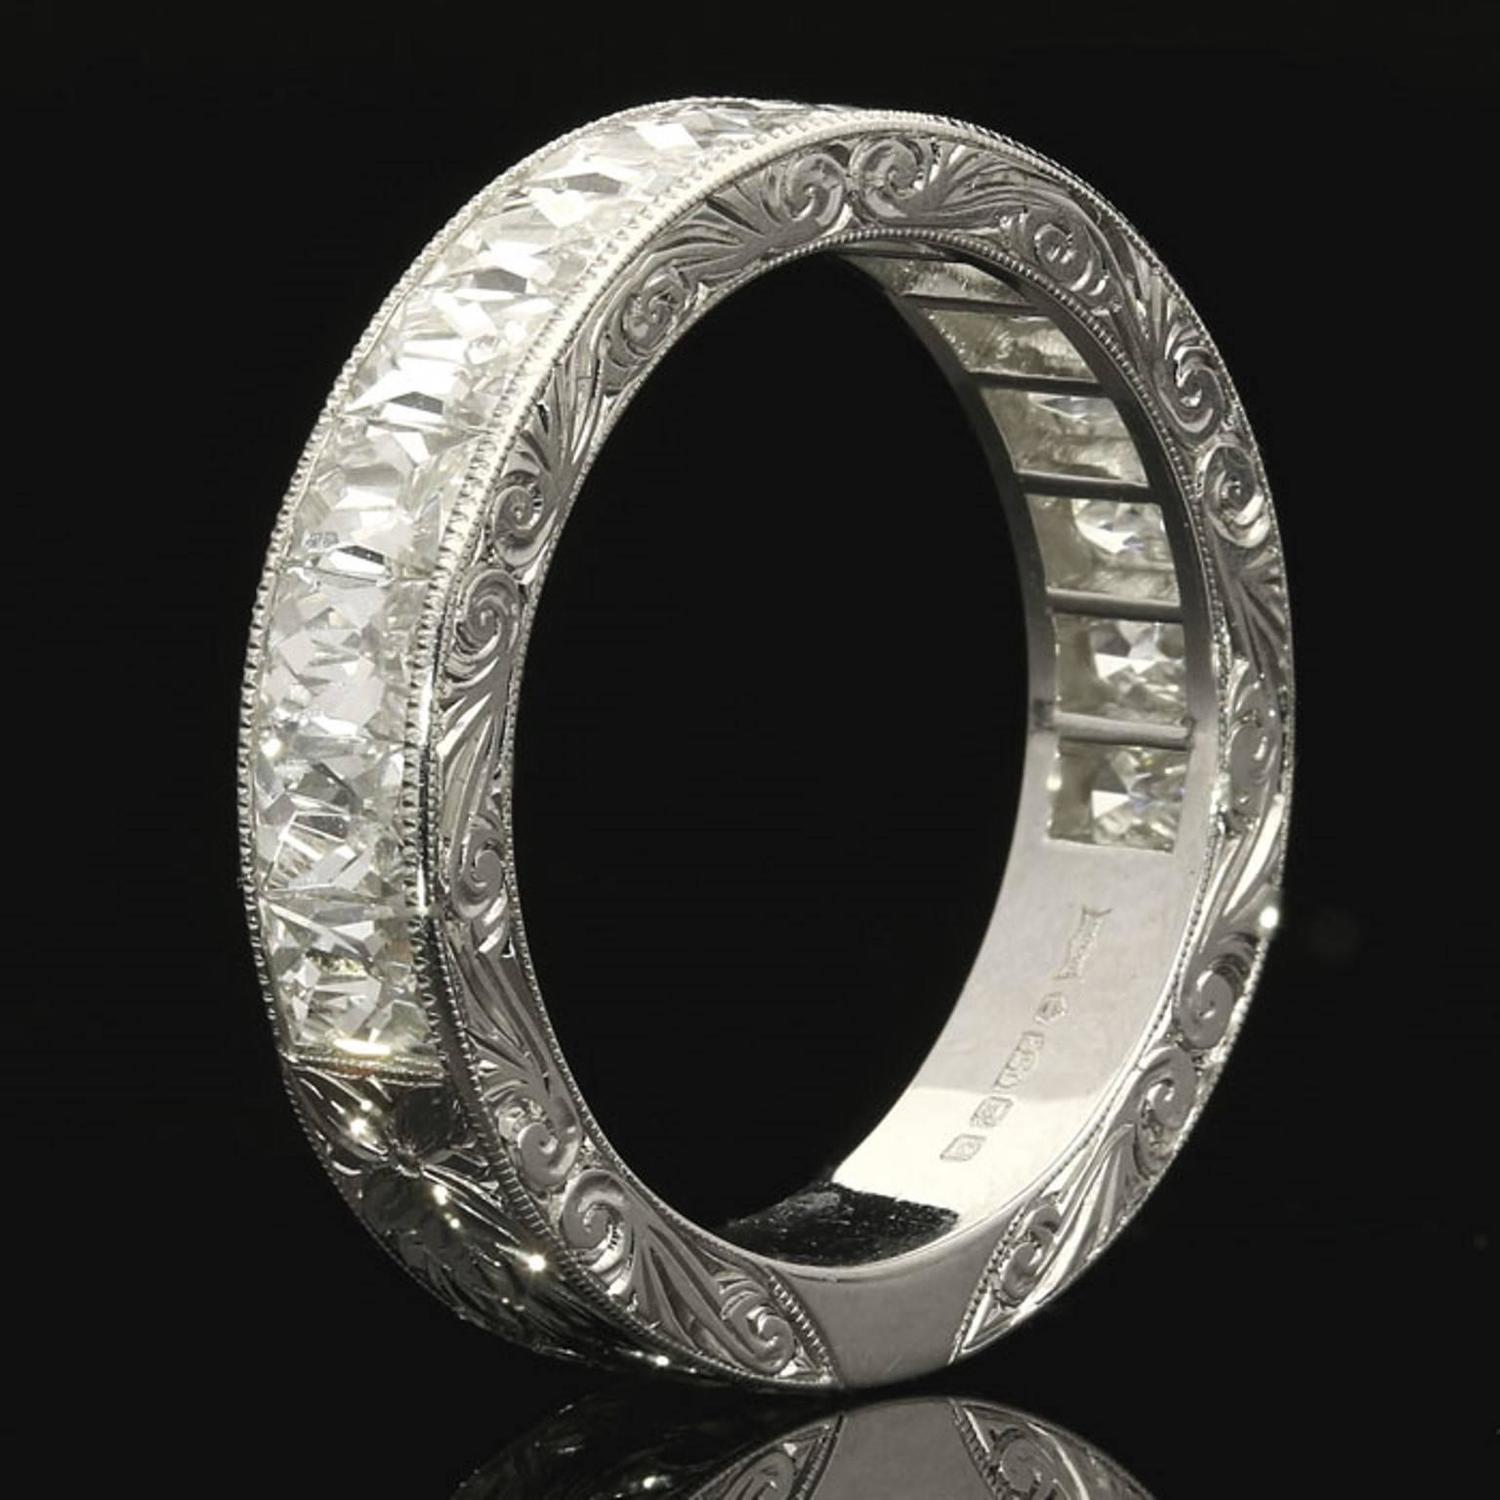 Engraved platinum ring : North south french cut diamond finely engraved platinum